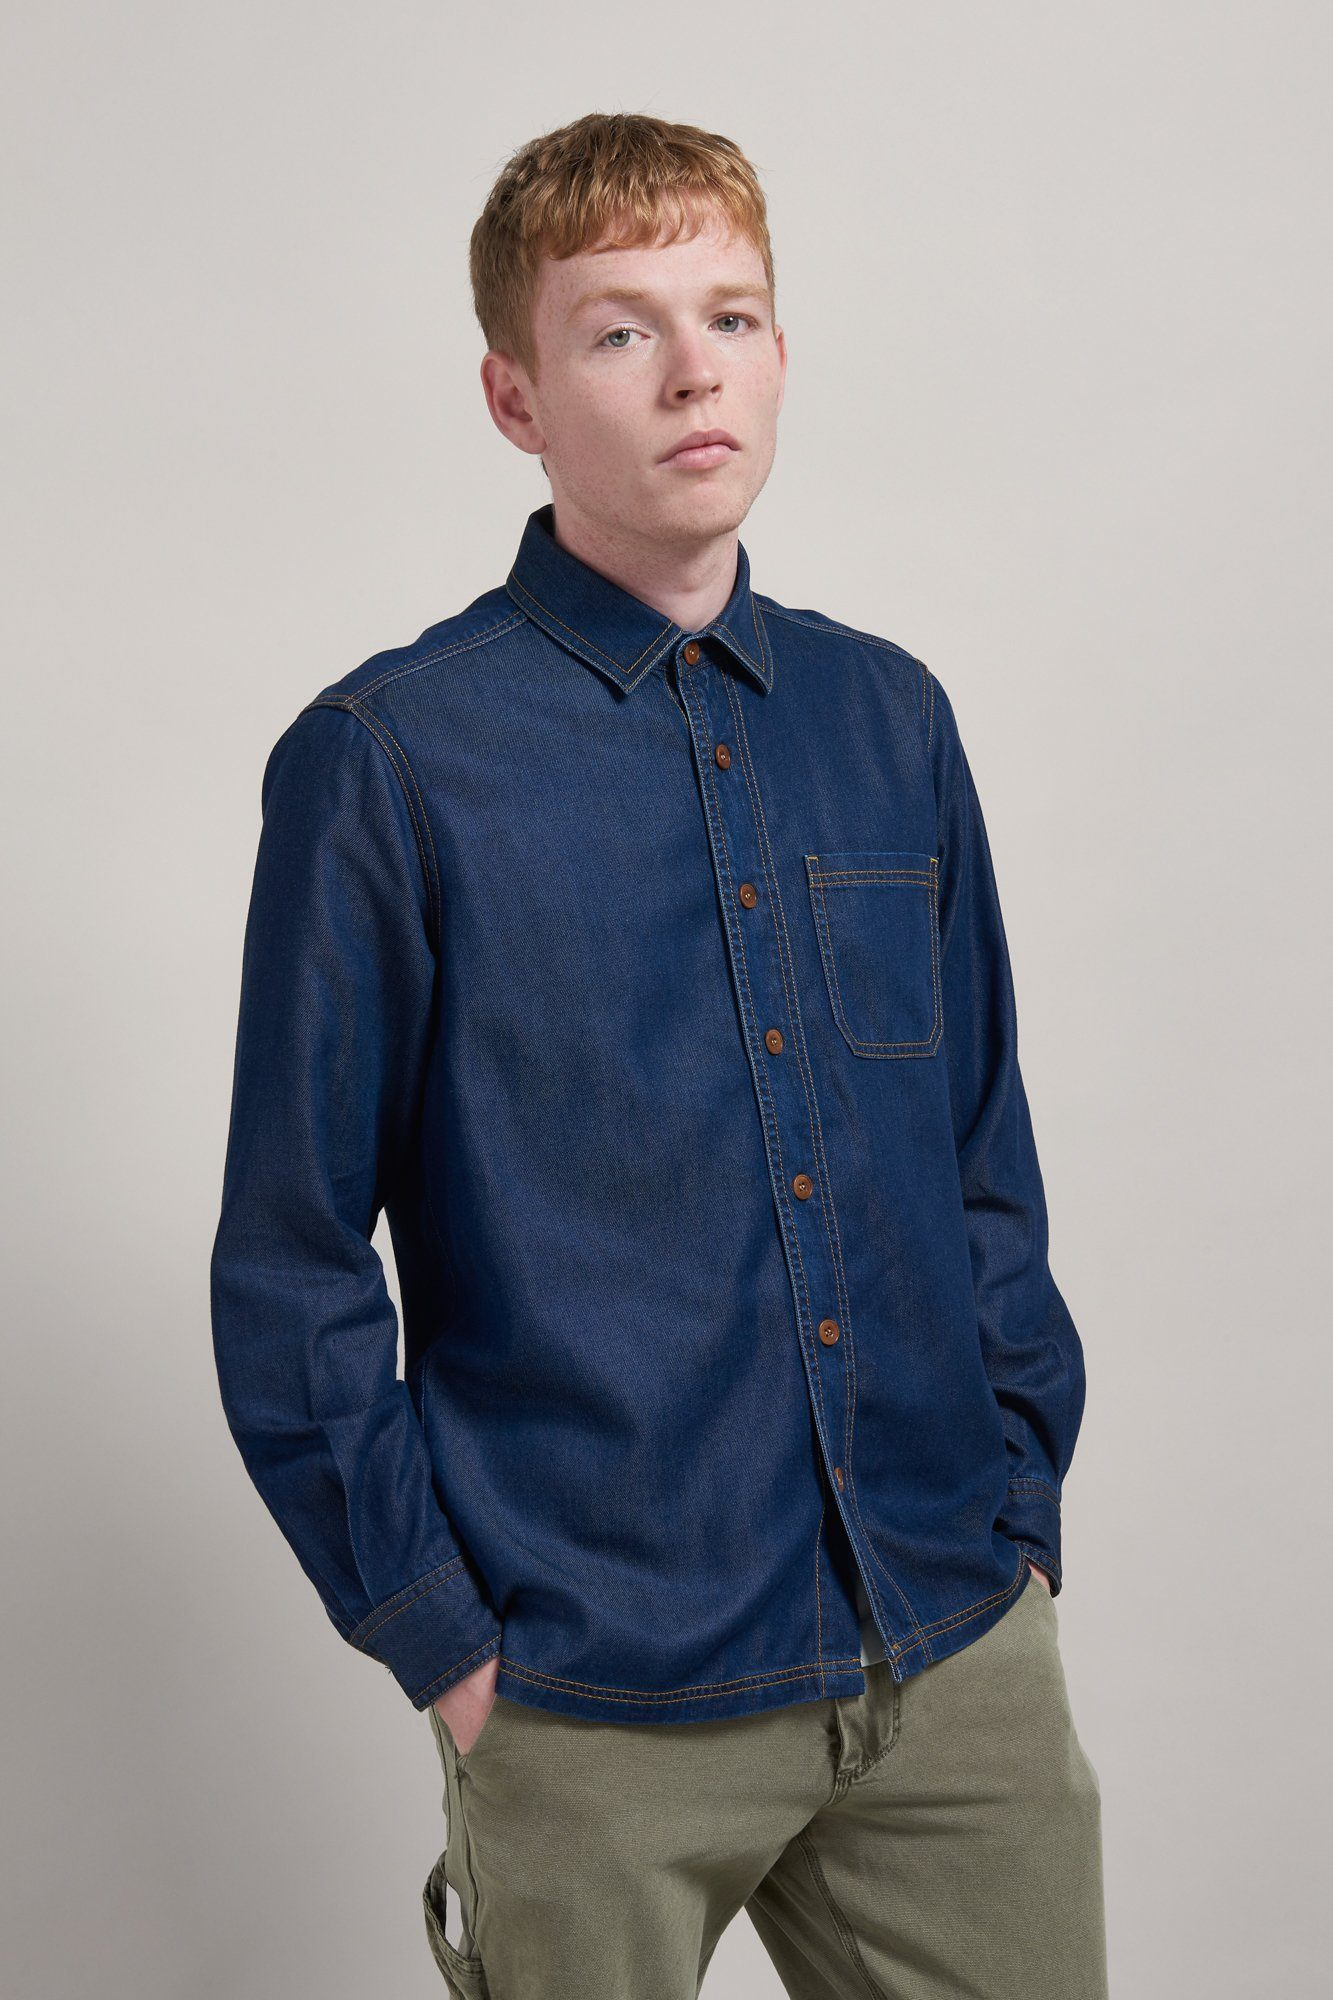 Shirt - STETSON Tencel Denim Shirt